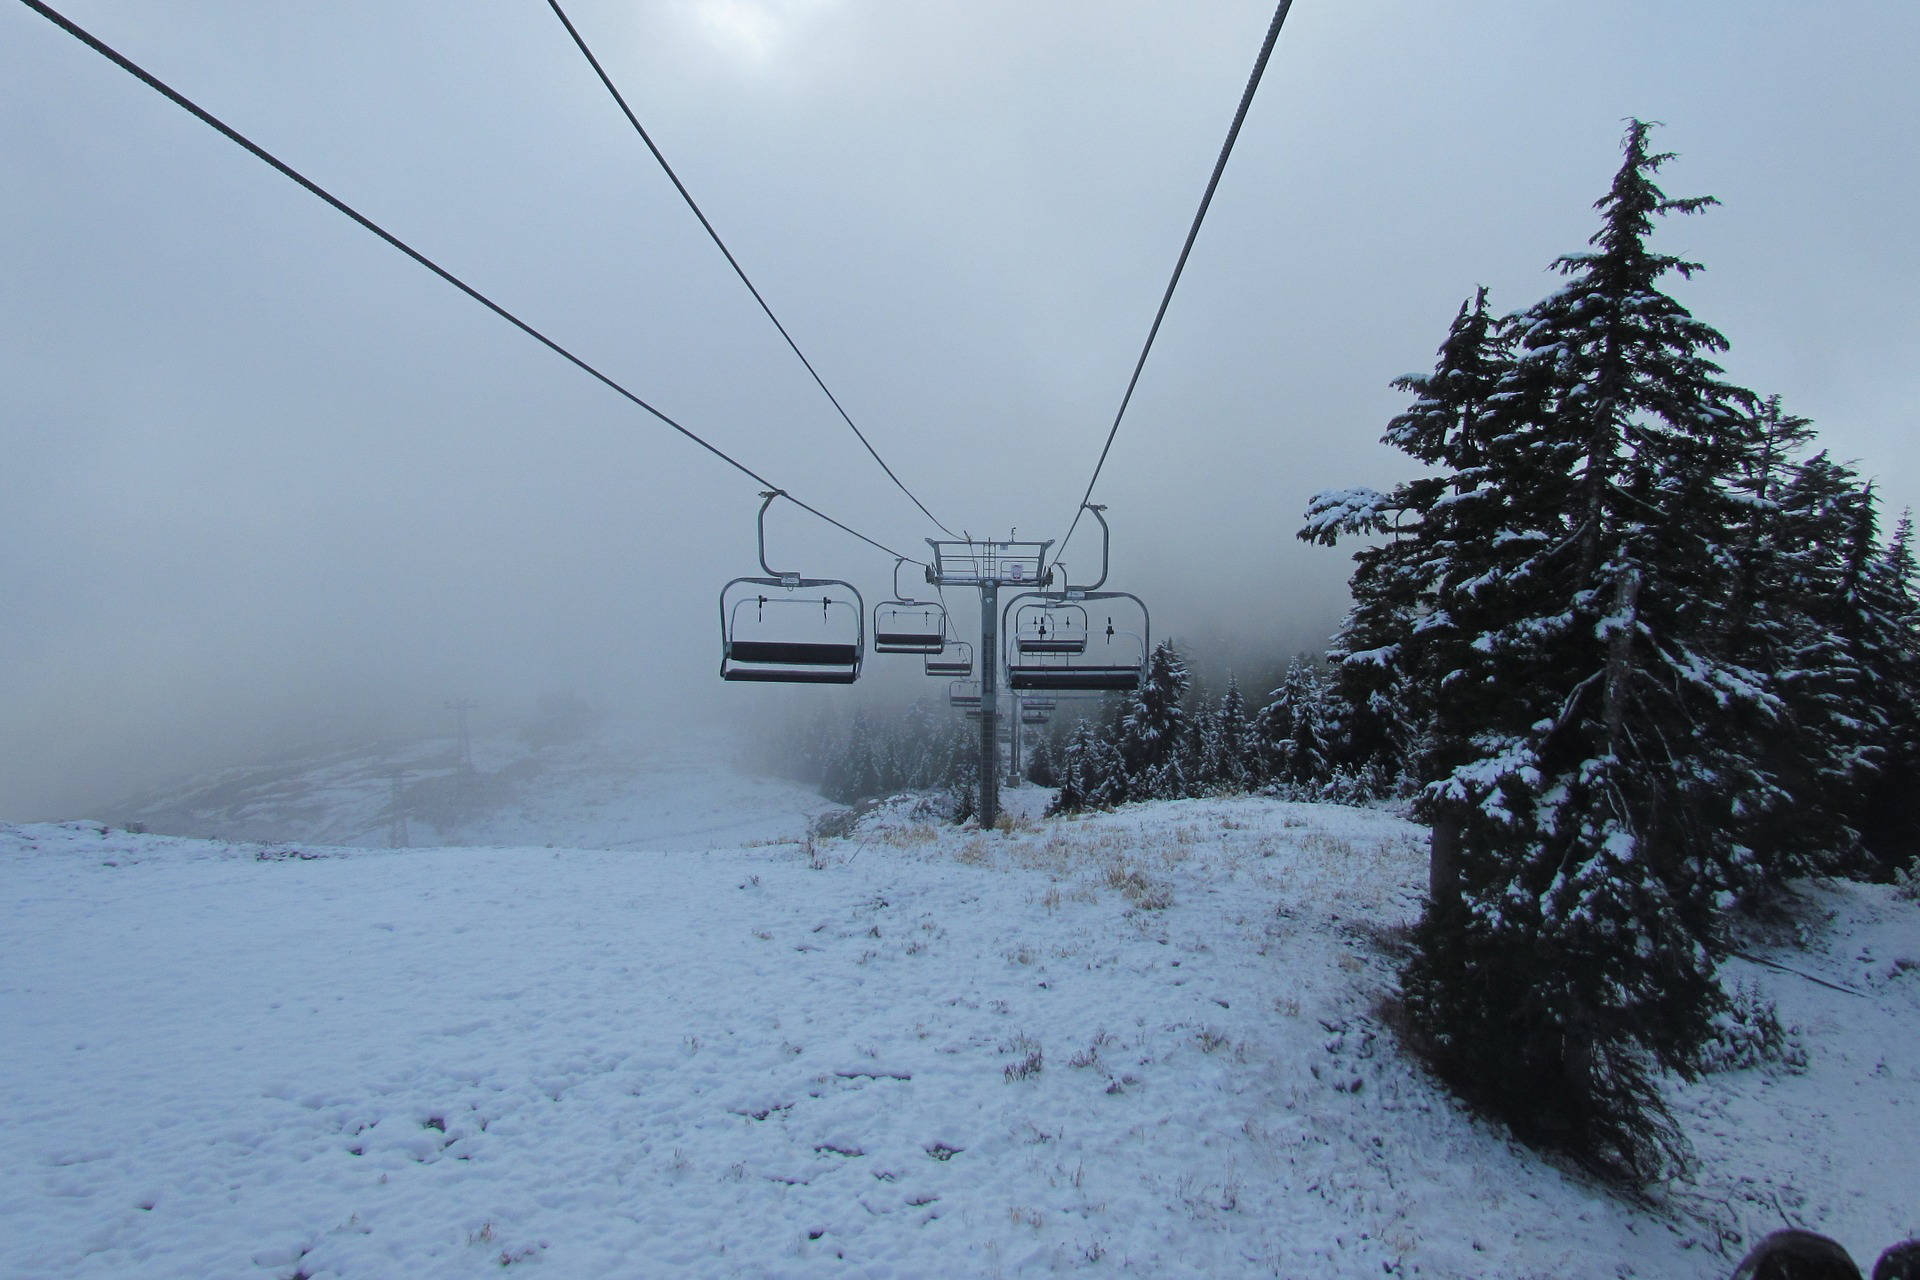 Skier sought after young person badly hurt on Grouse Mountain